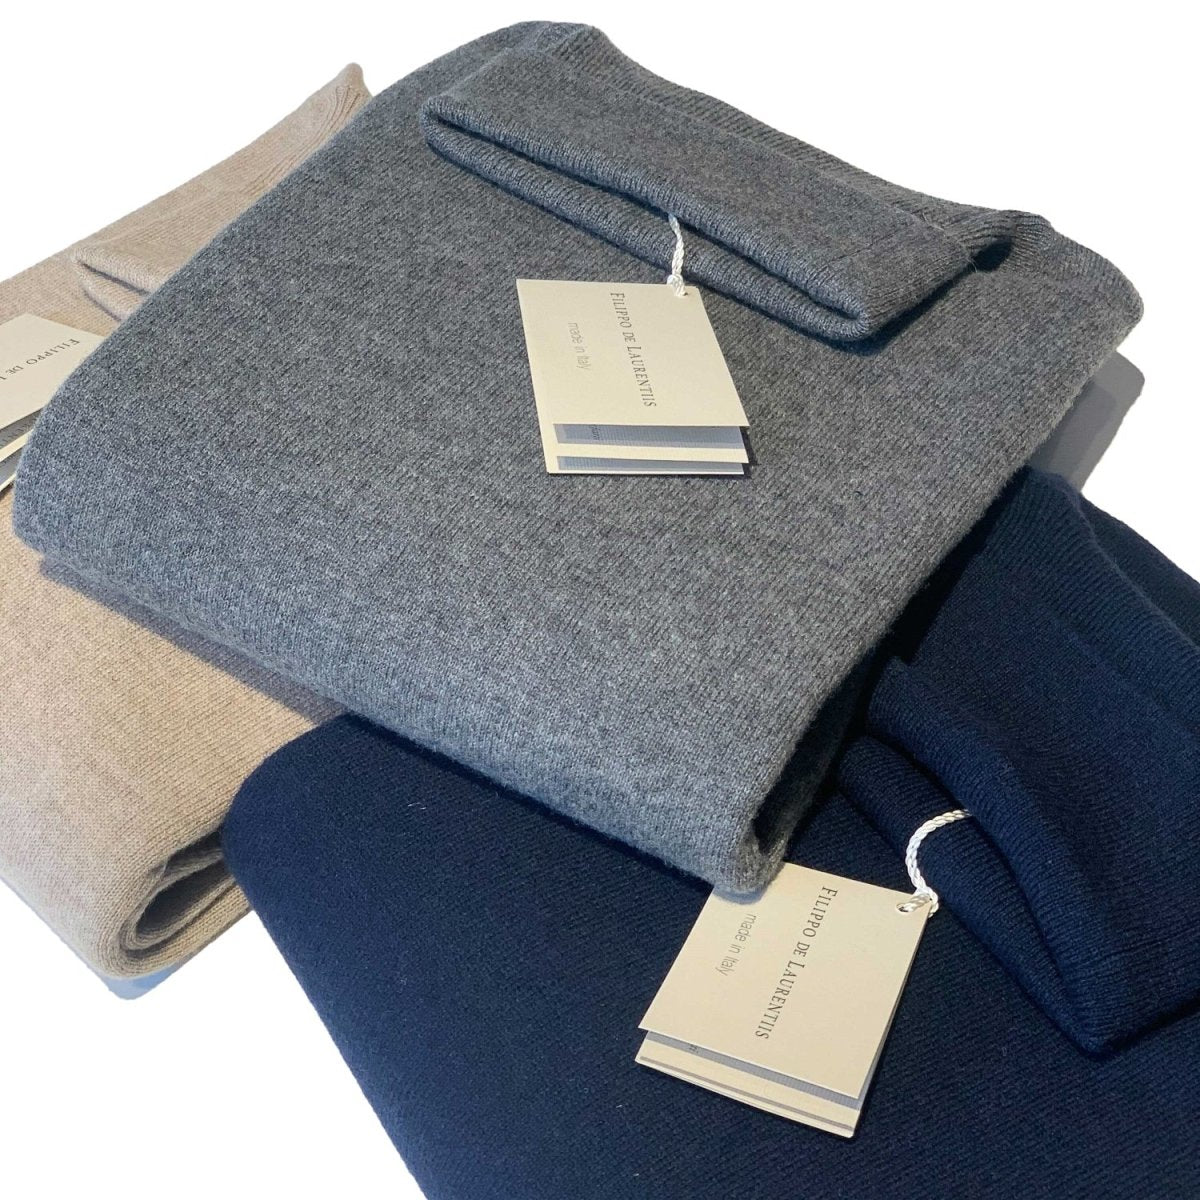 Filippo de Laurentis - Coltrui, Grey, Knitwear | NEW TAILOR Webshop